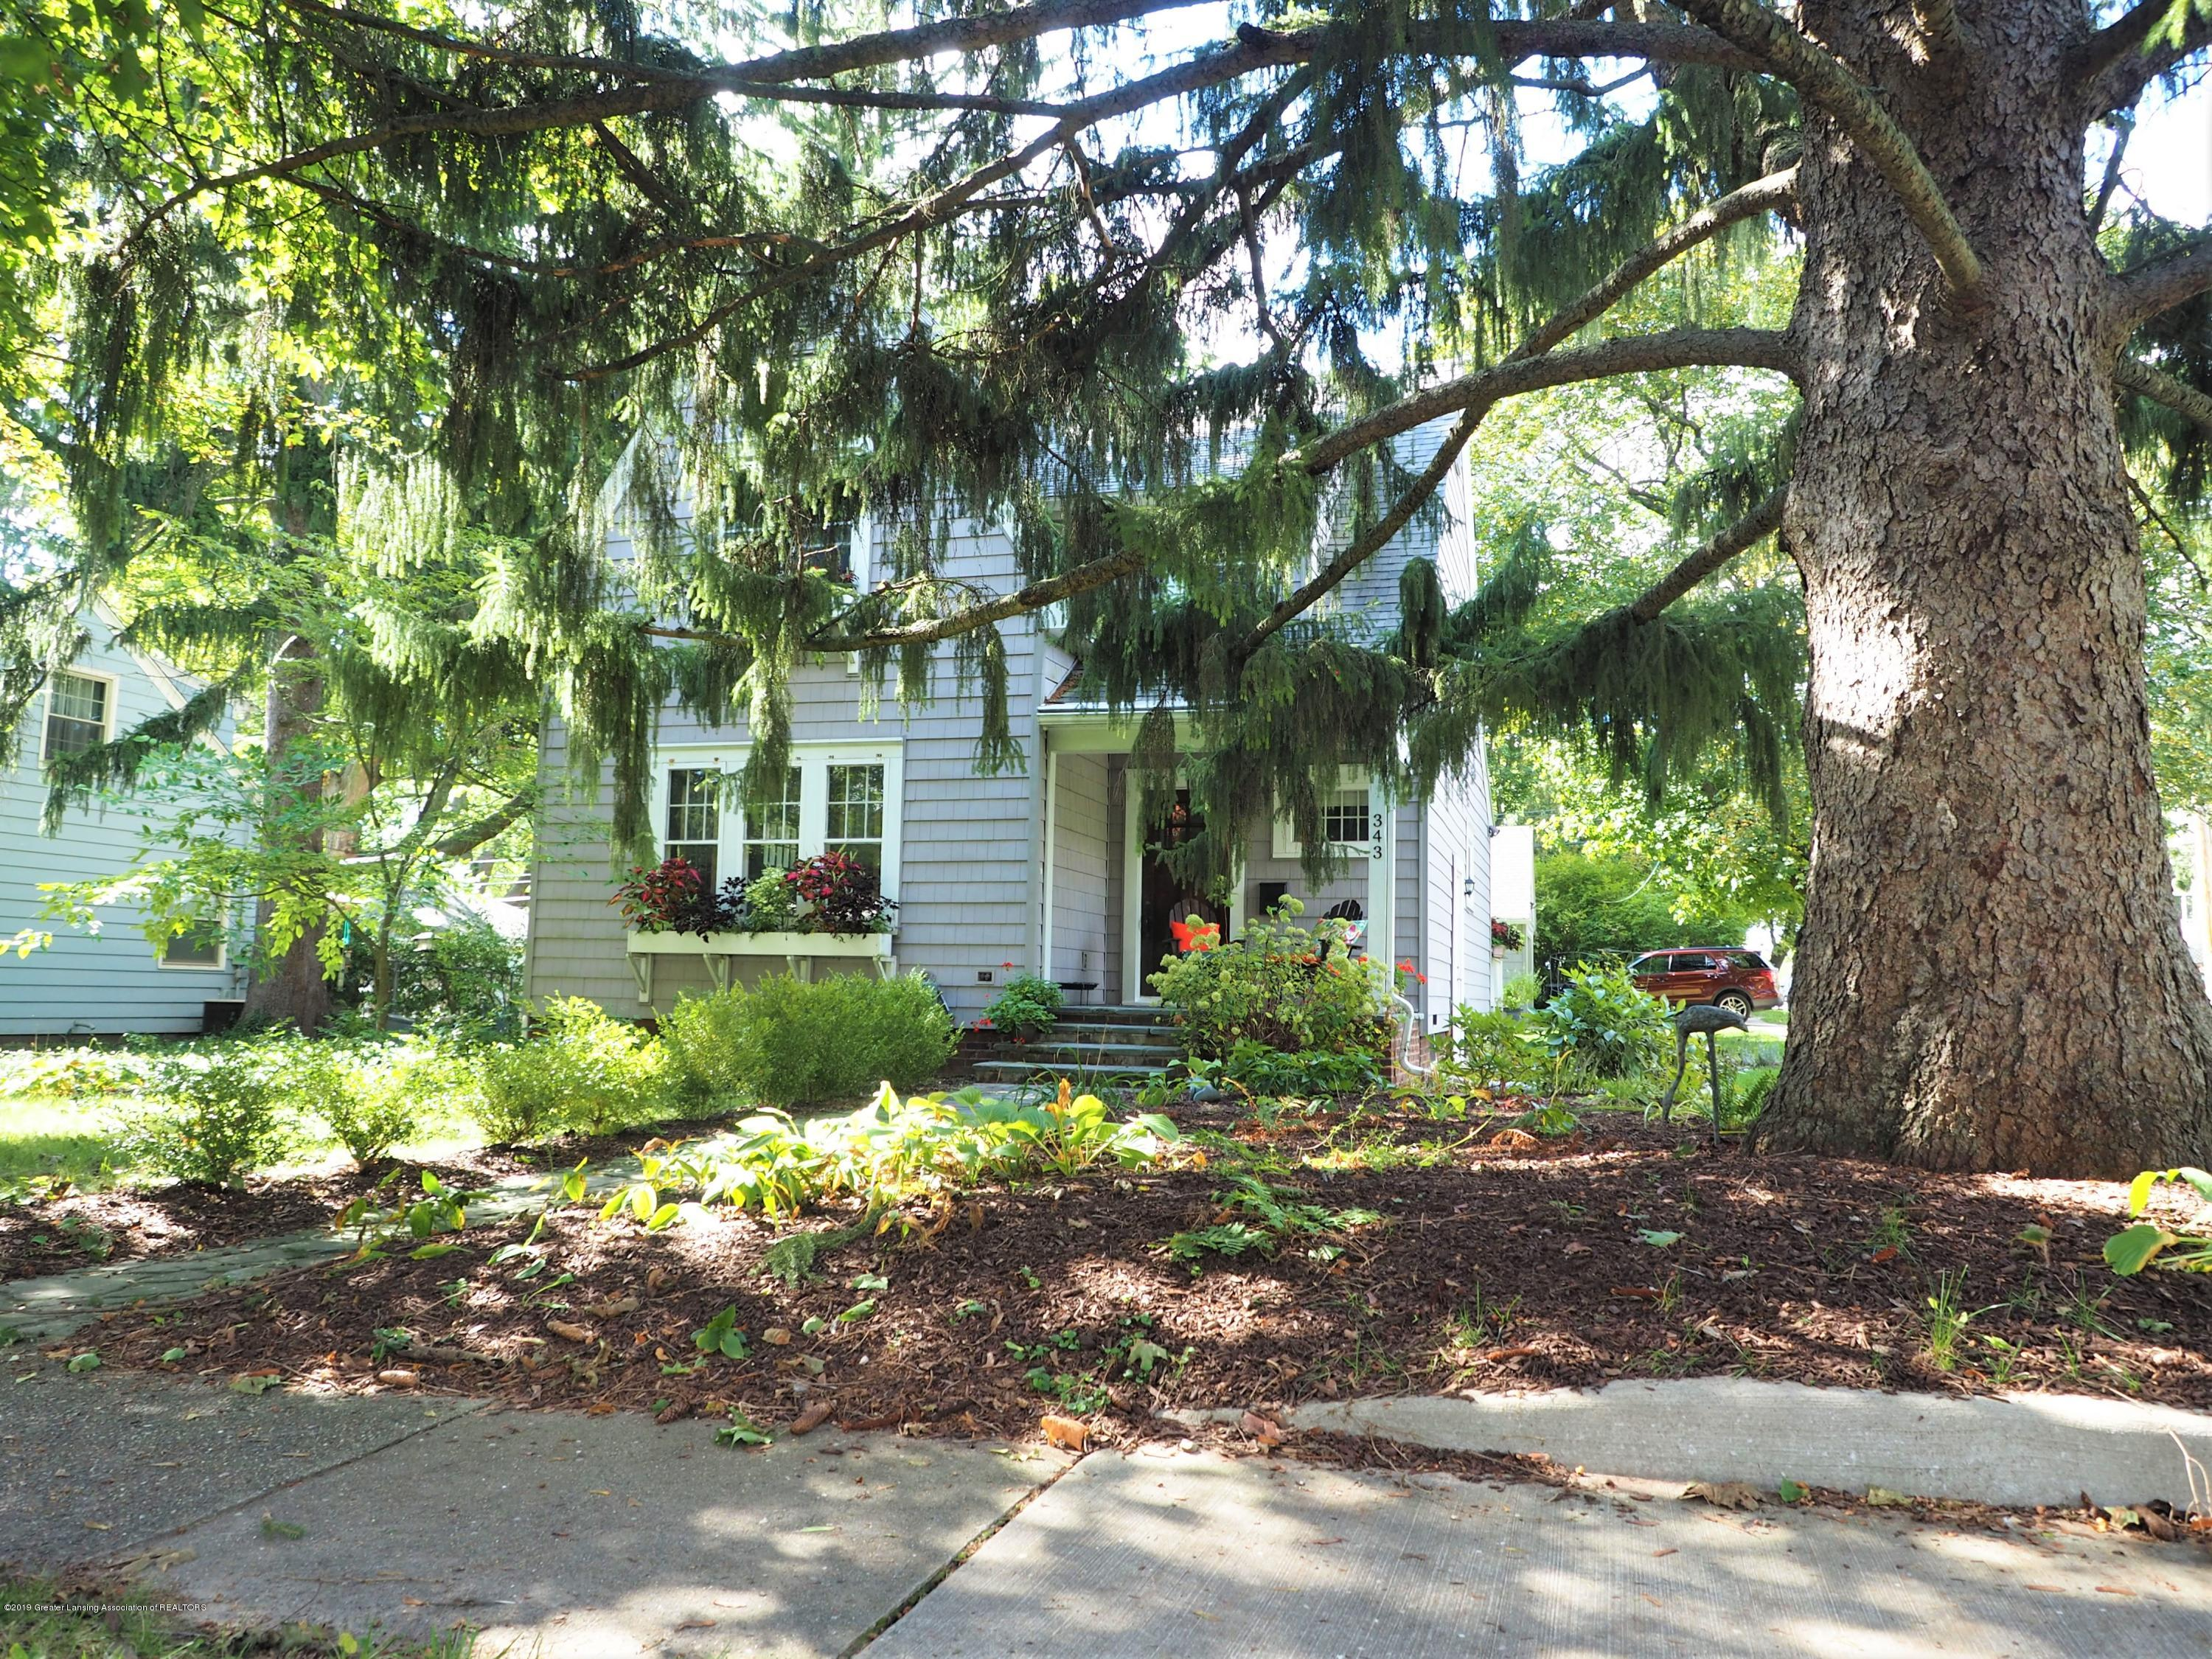 343 Cowley Ave - P1011447 - 2